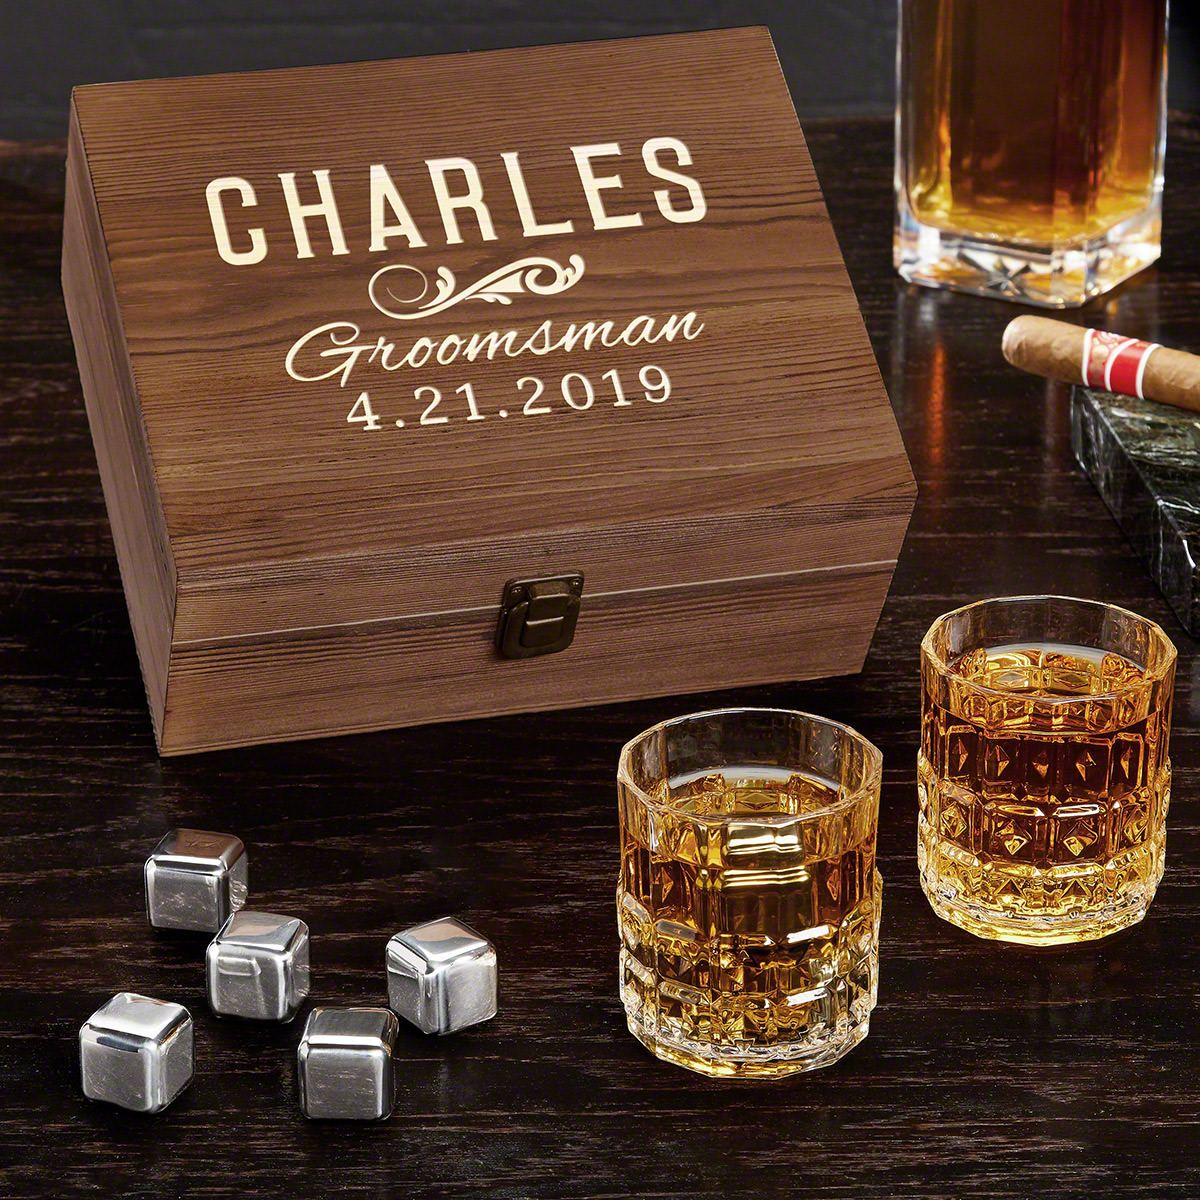 Classic Groomsman Personalized Whiskey Set - Gift for Groomsmen